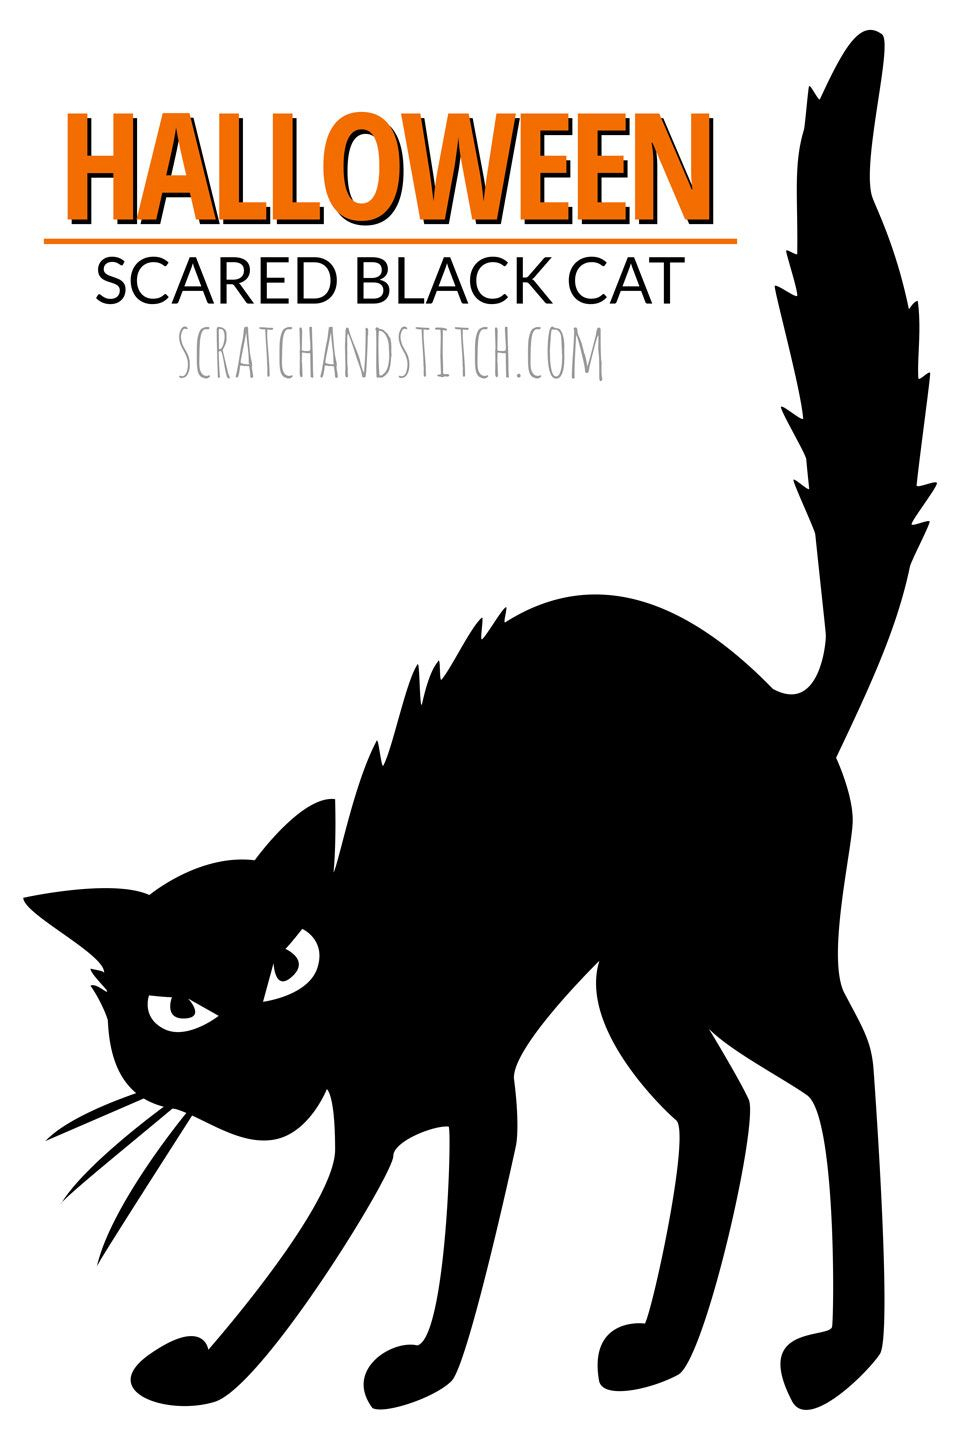 8 Easy Halloween Decor Ideas | Halloween Crafts & Decor | Pinterest - Free Printable Cat Silhouette